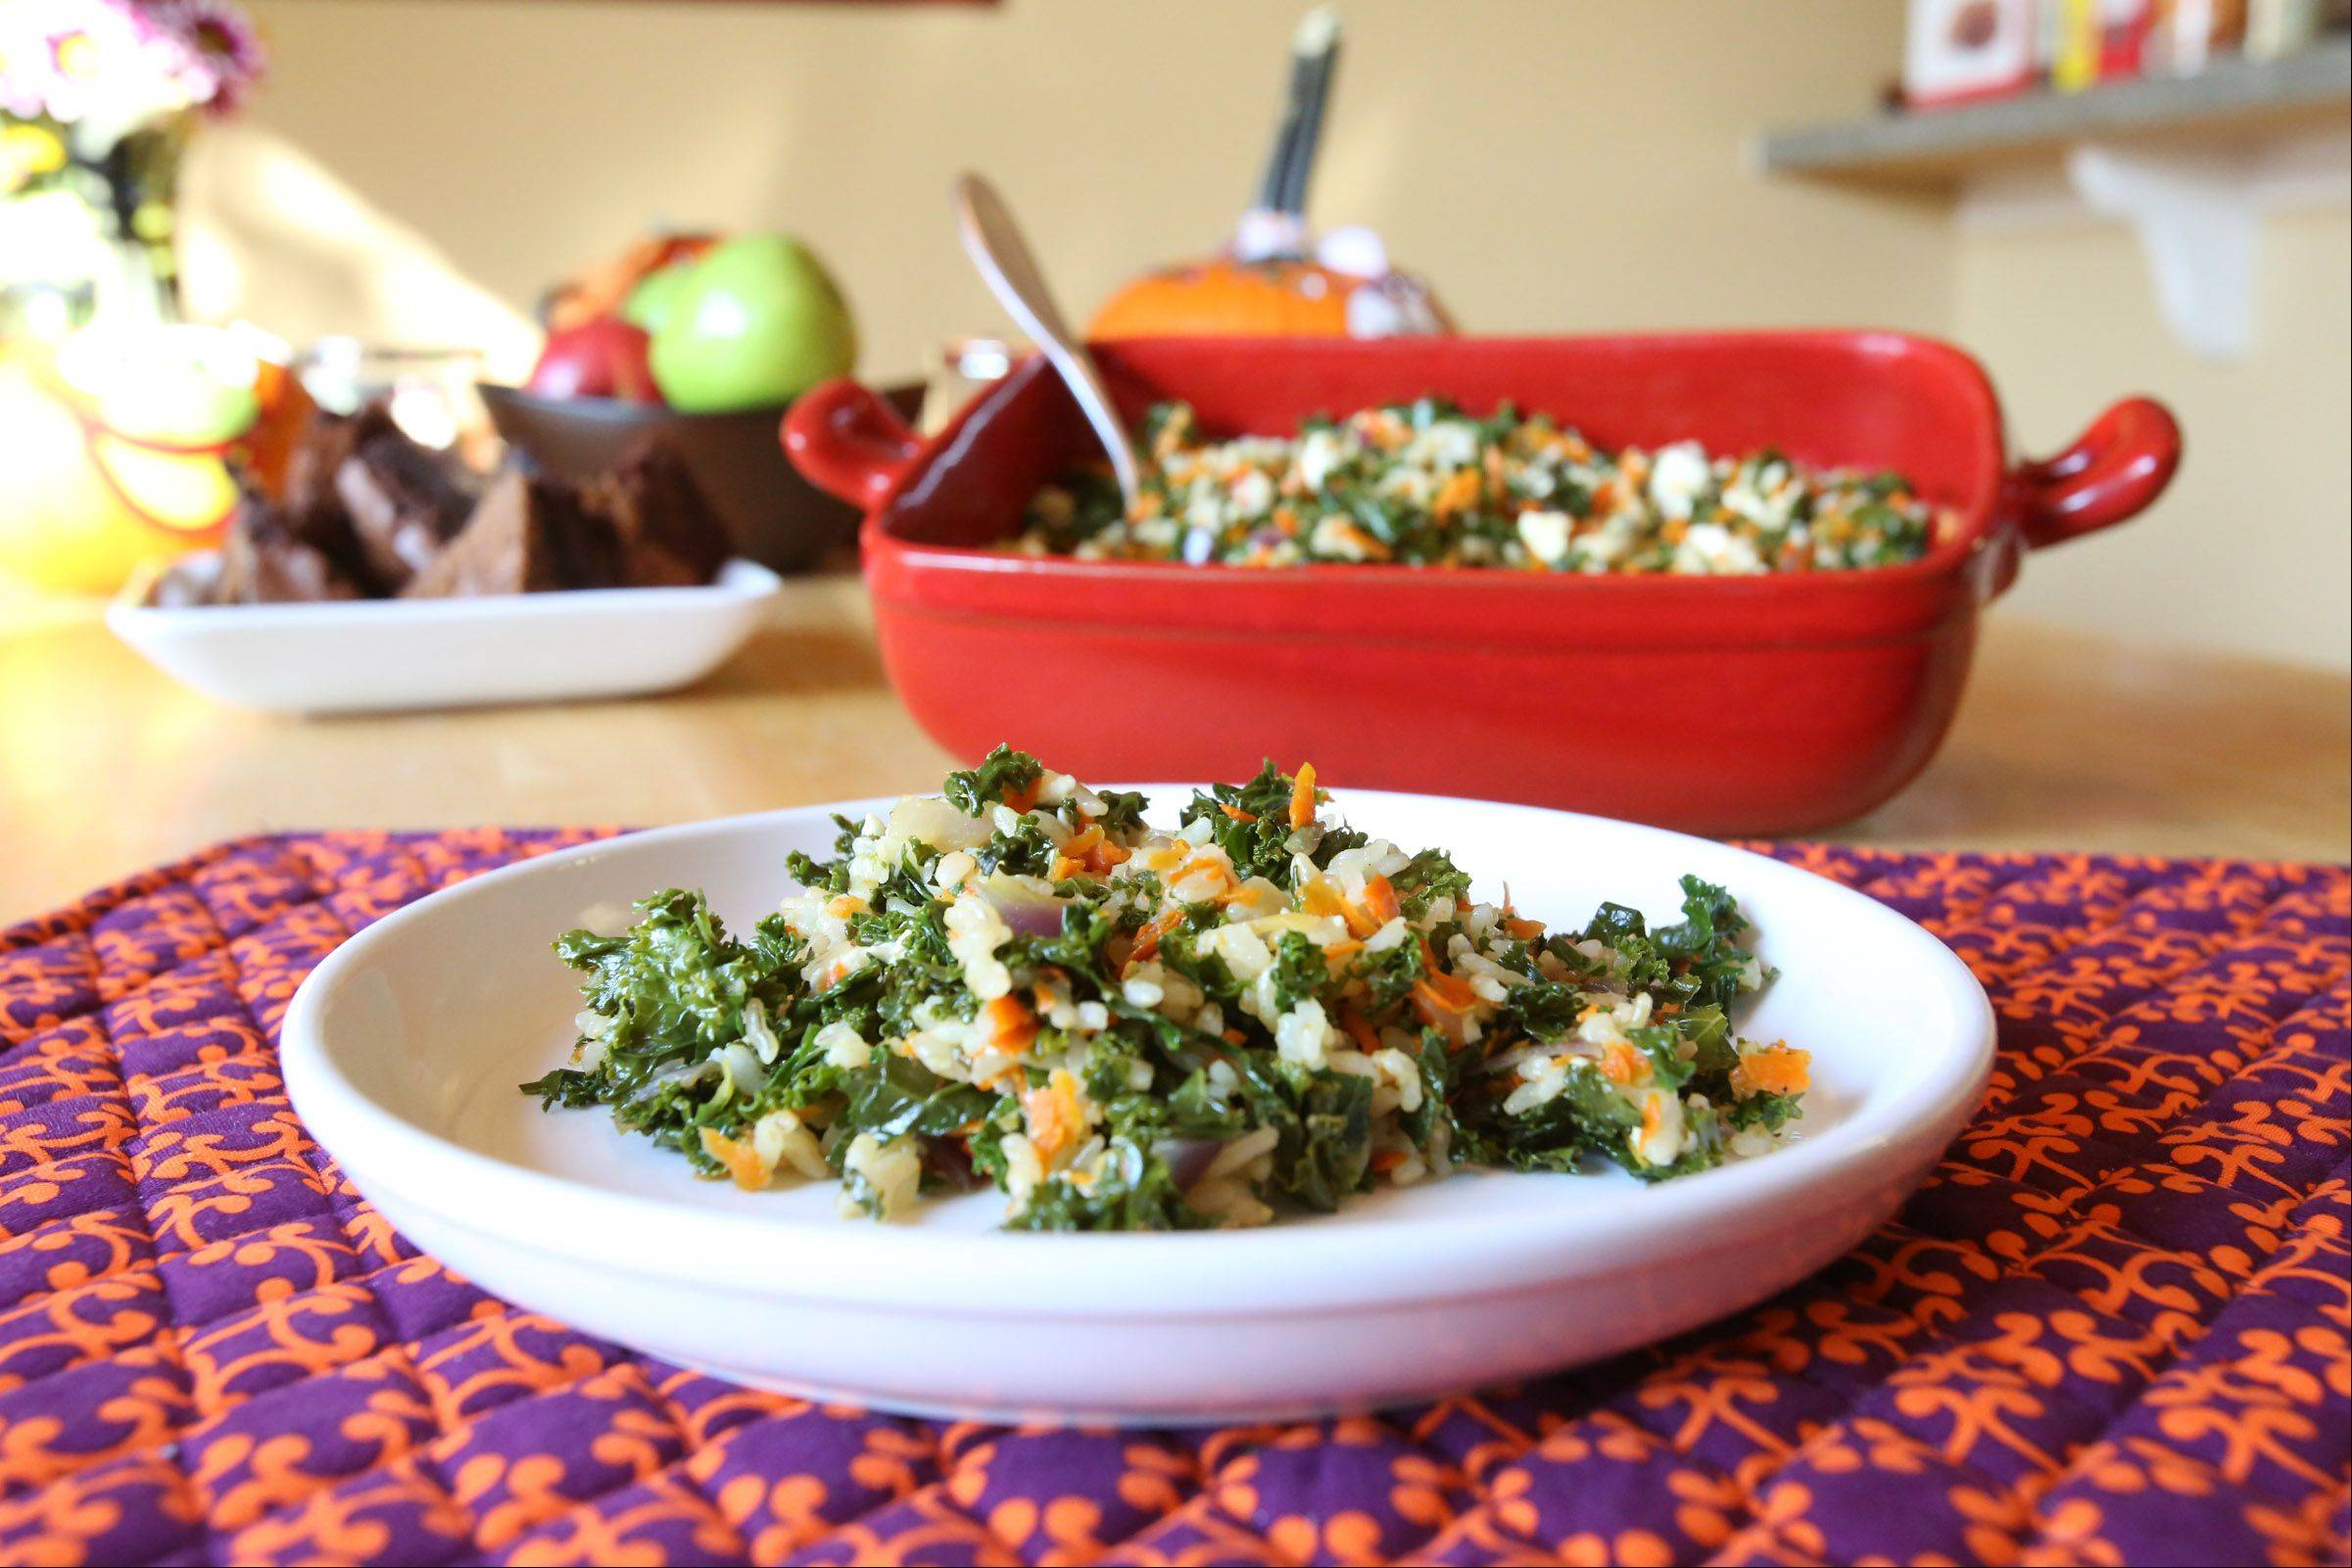 Christine Gallup's sauteed kale rice in a nutrient-rich dinner.